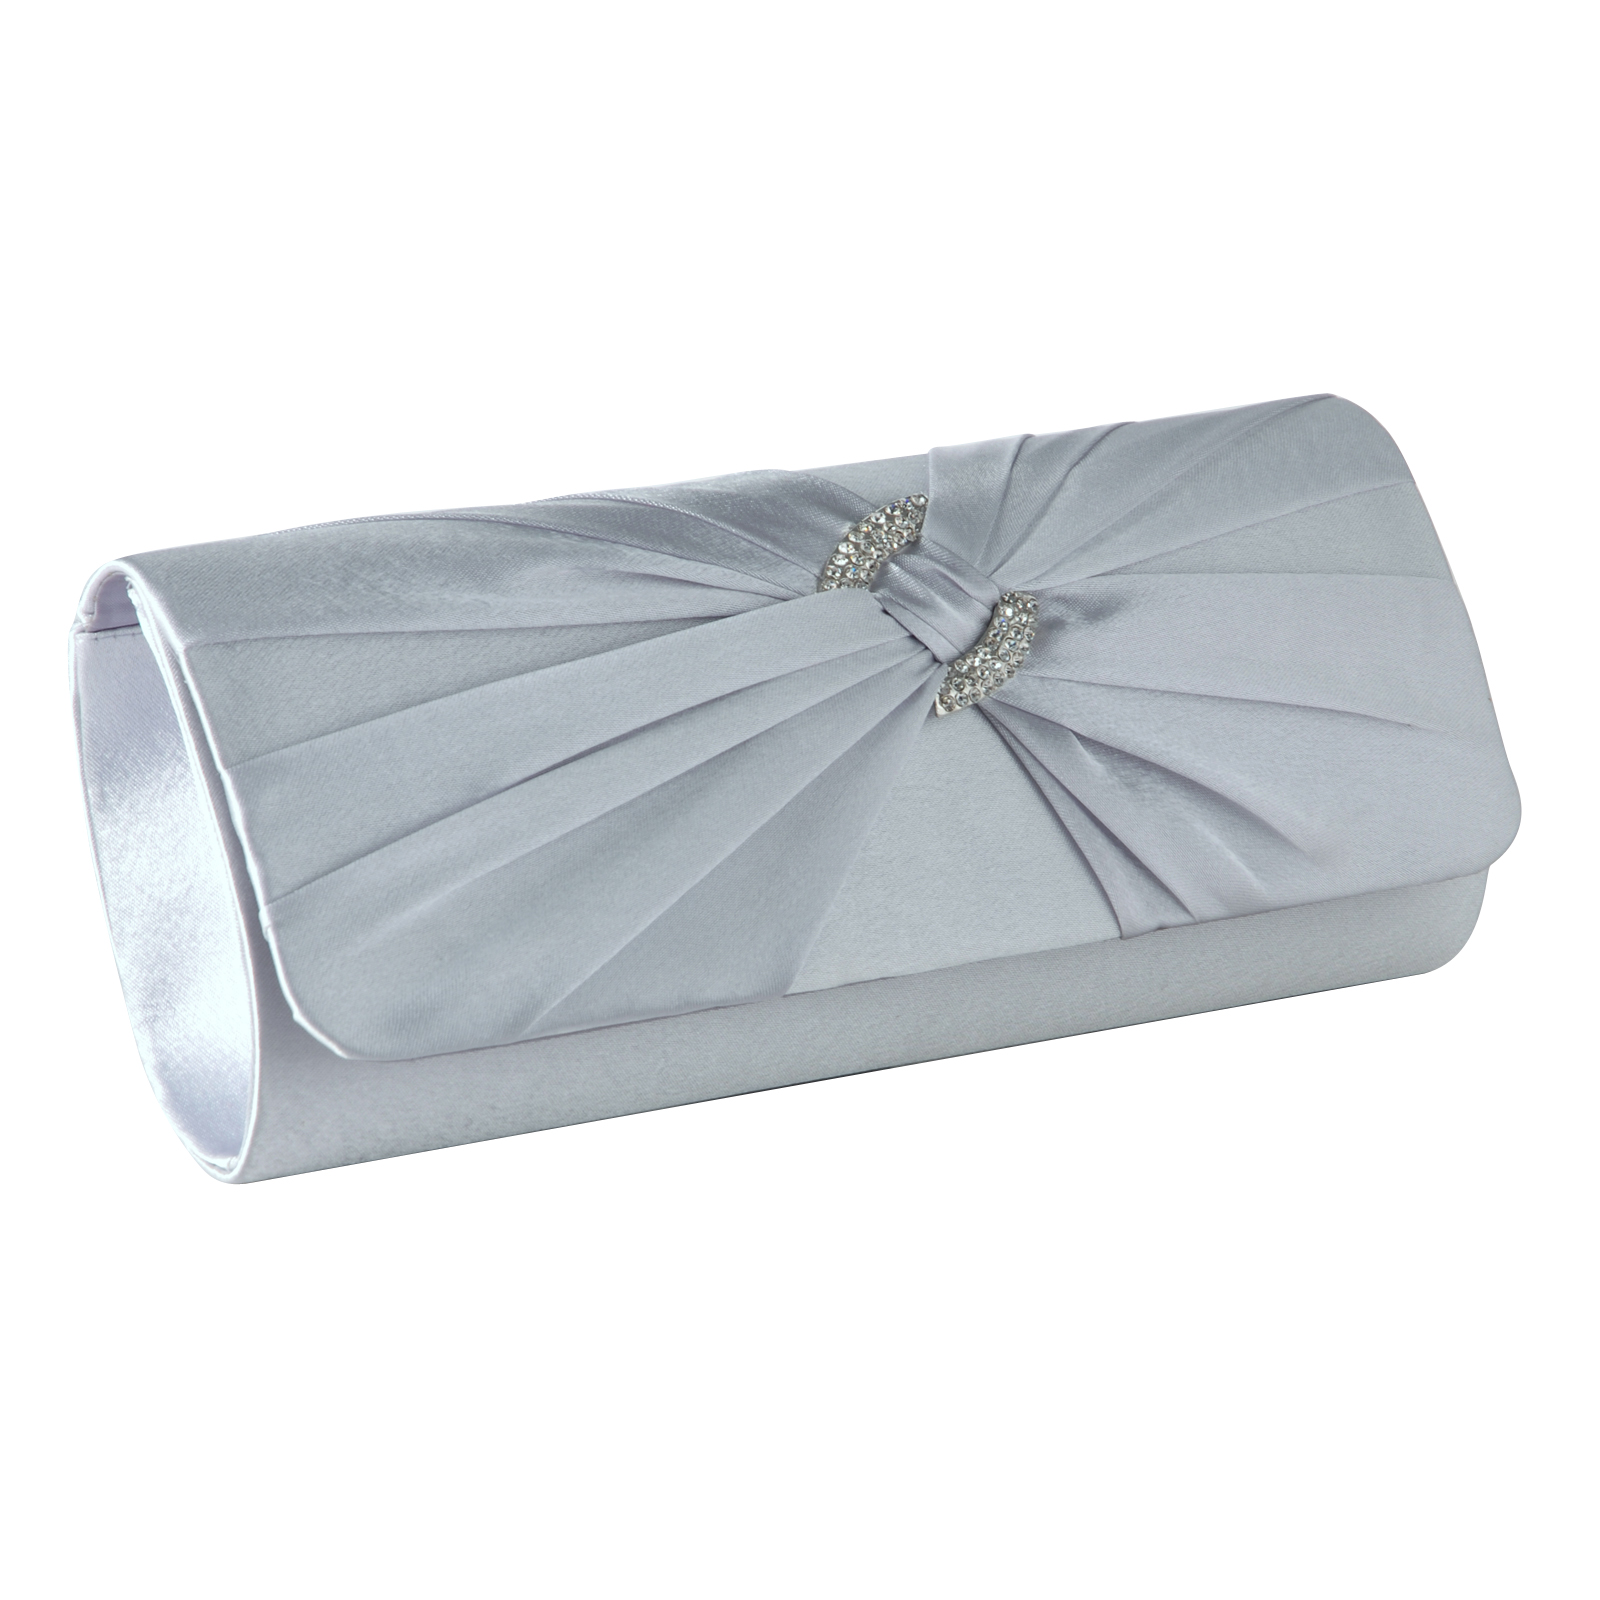 Satin Diamante Pleated Bridal Clutch Bag Ladies Evening Handbag Shoulder Bag | EBay